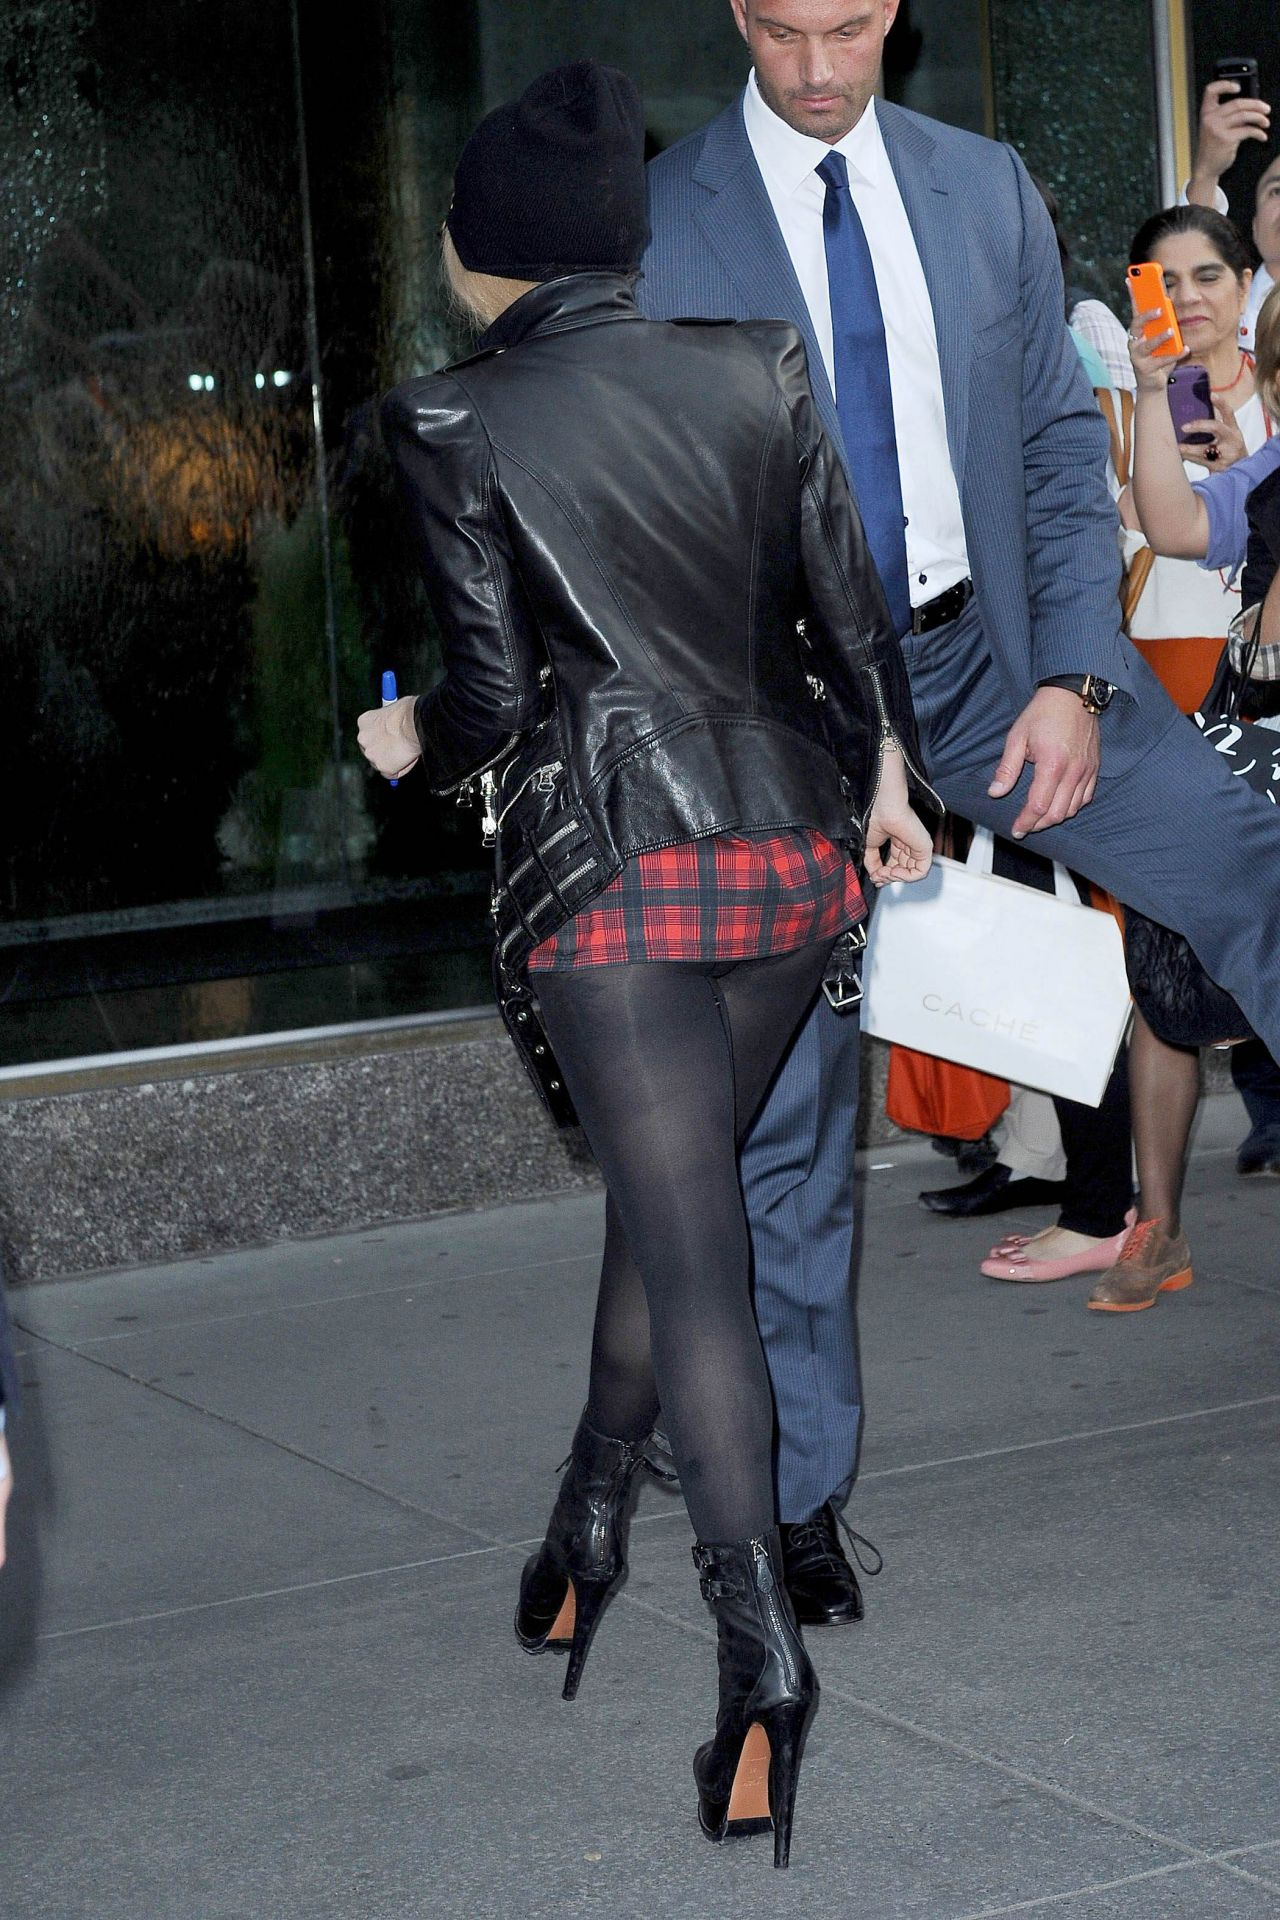 Lady Gaga Shows Her Legs New York City May 2014